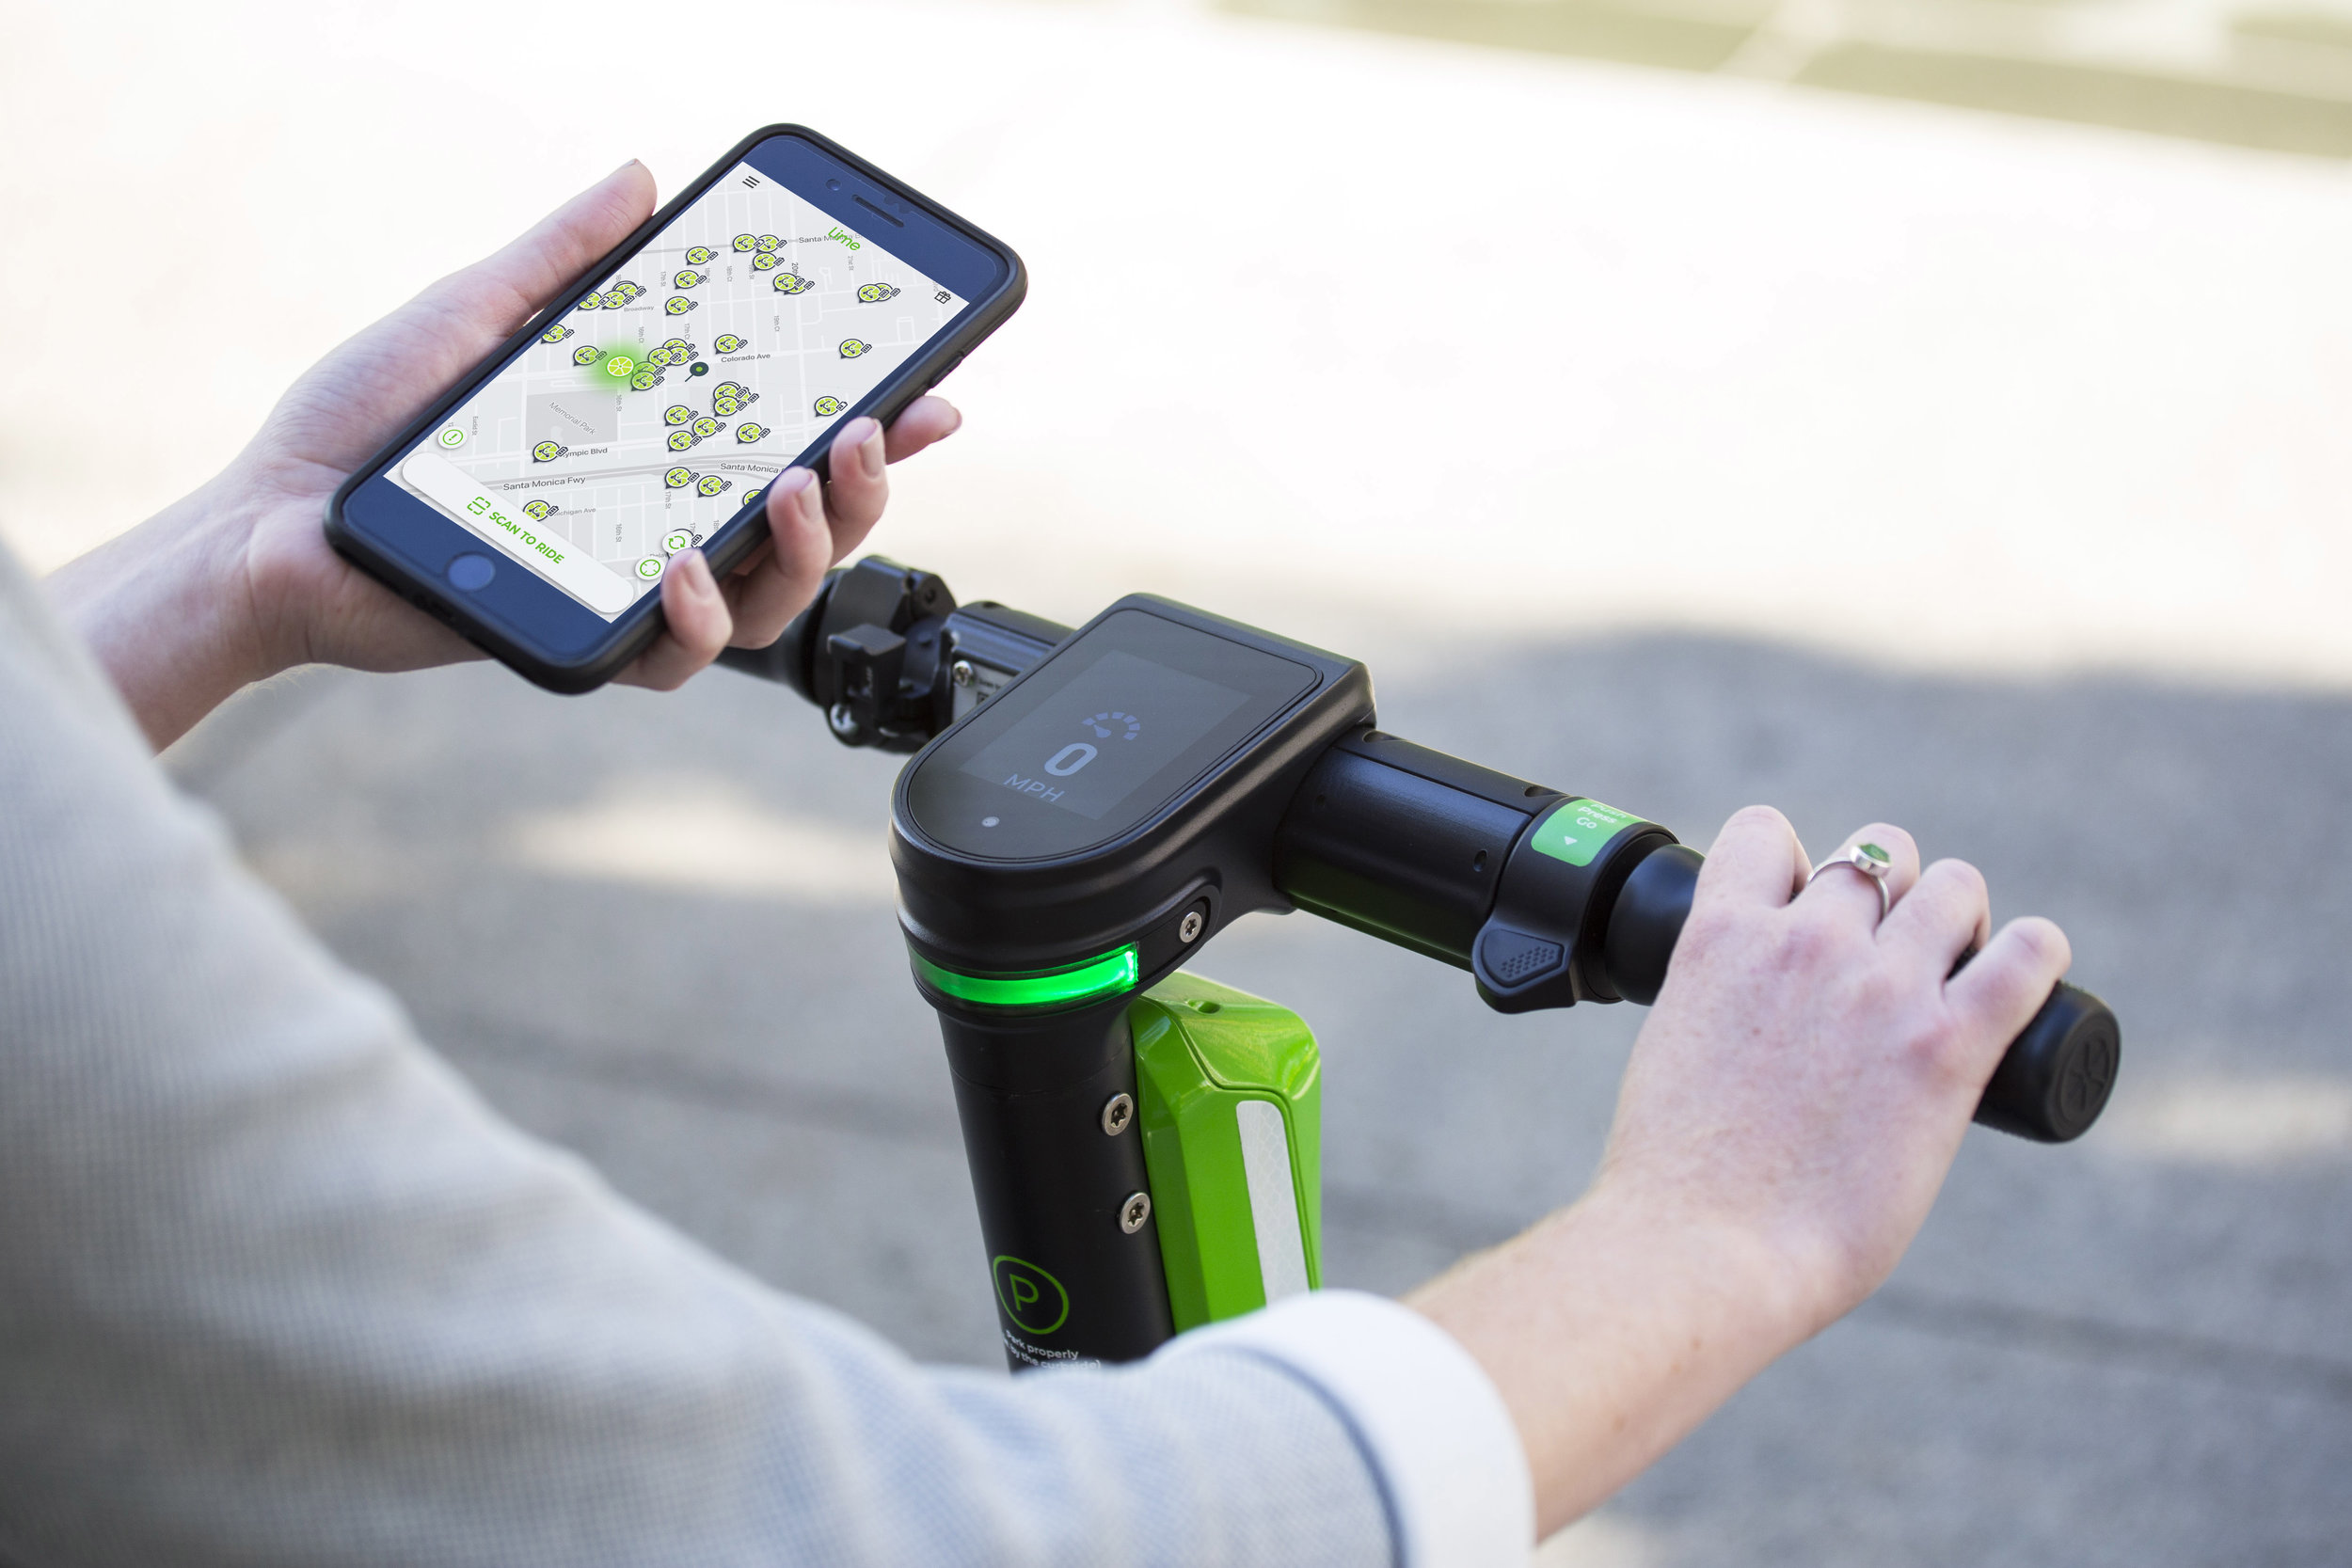 The Lime scooter handlebars and app